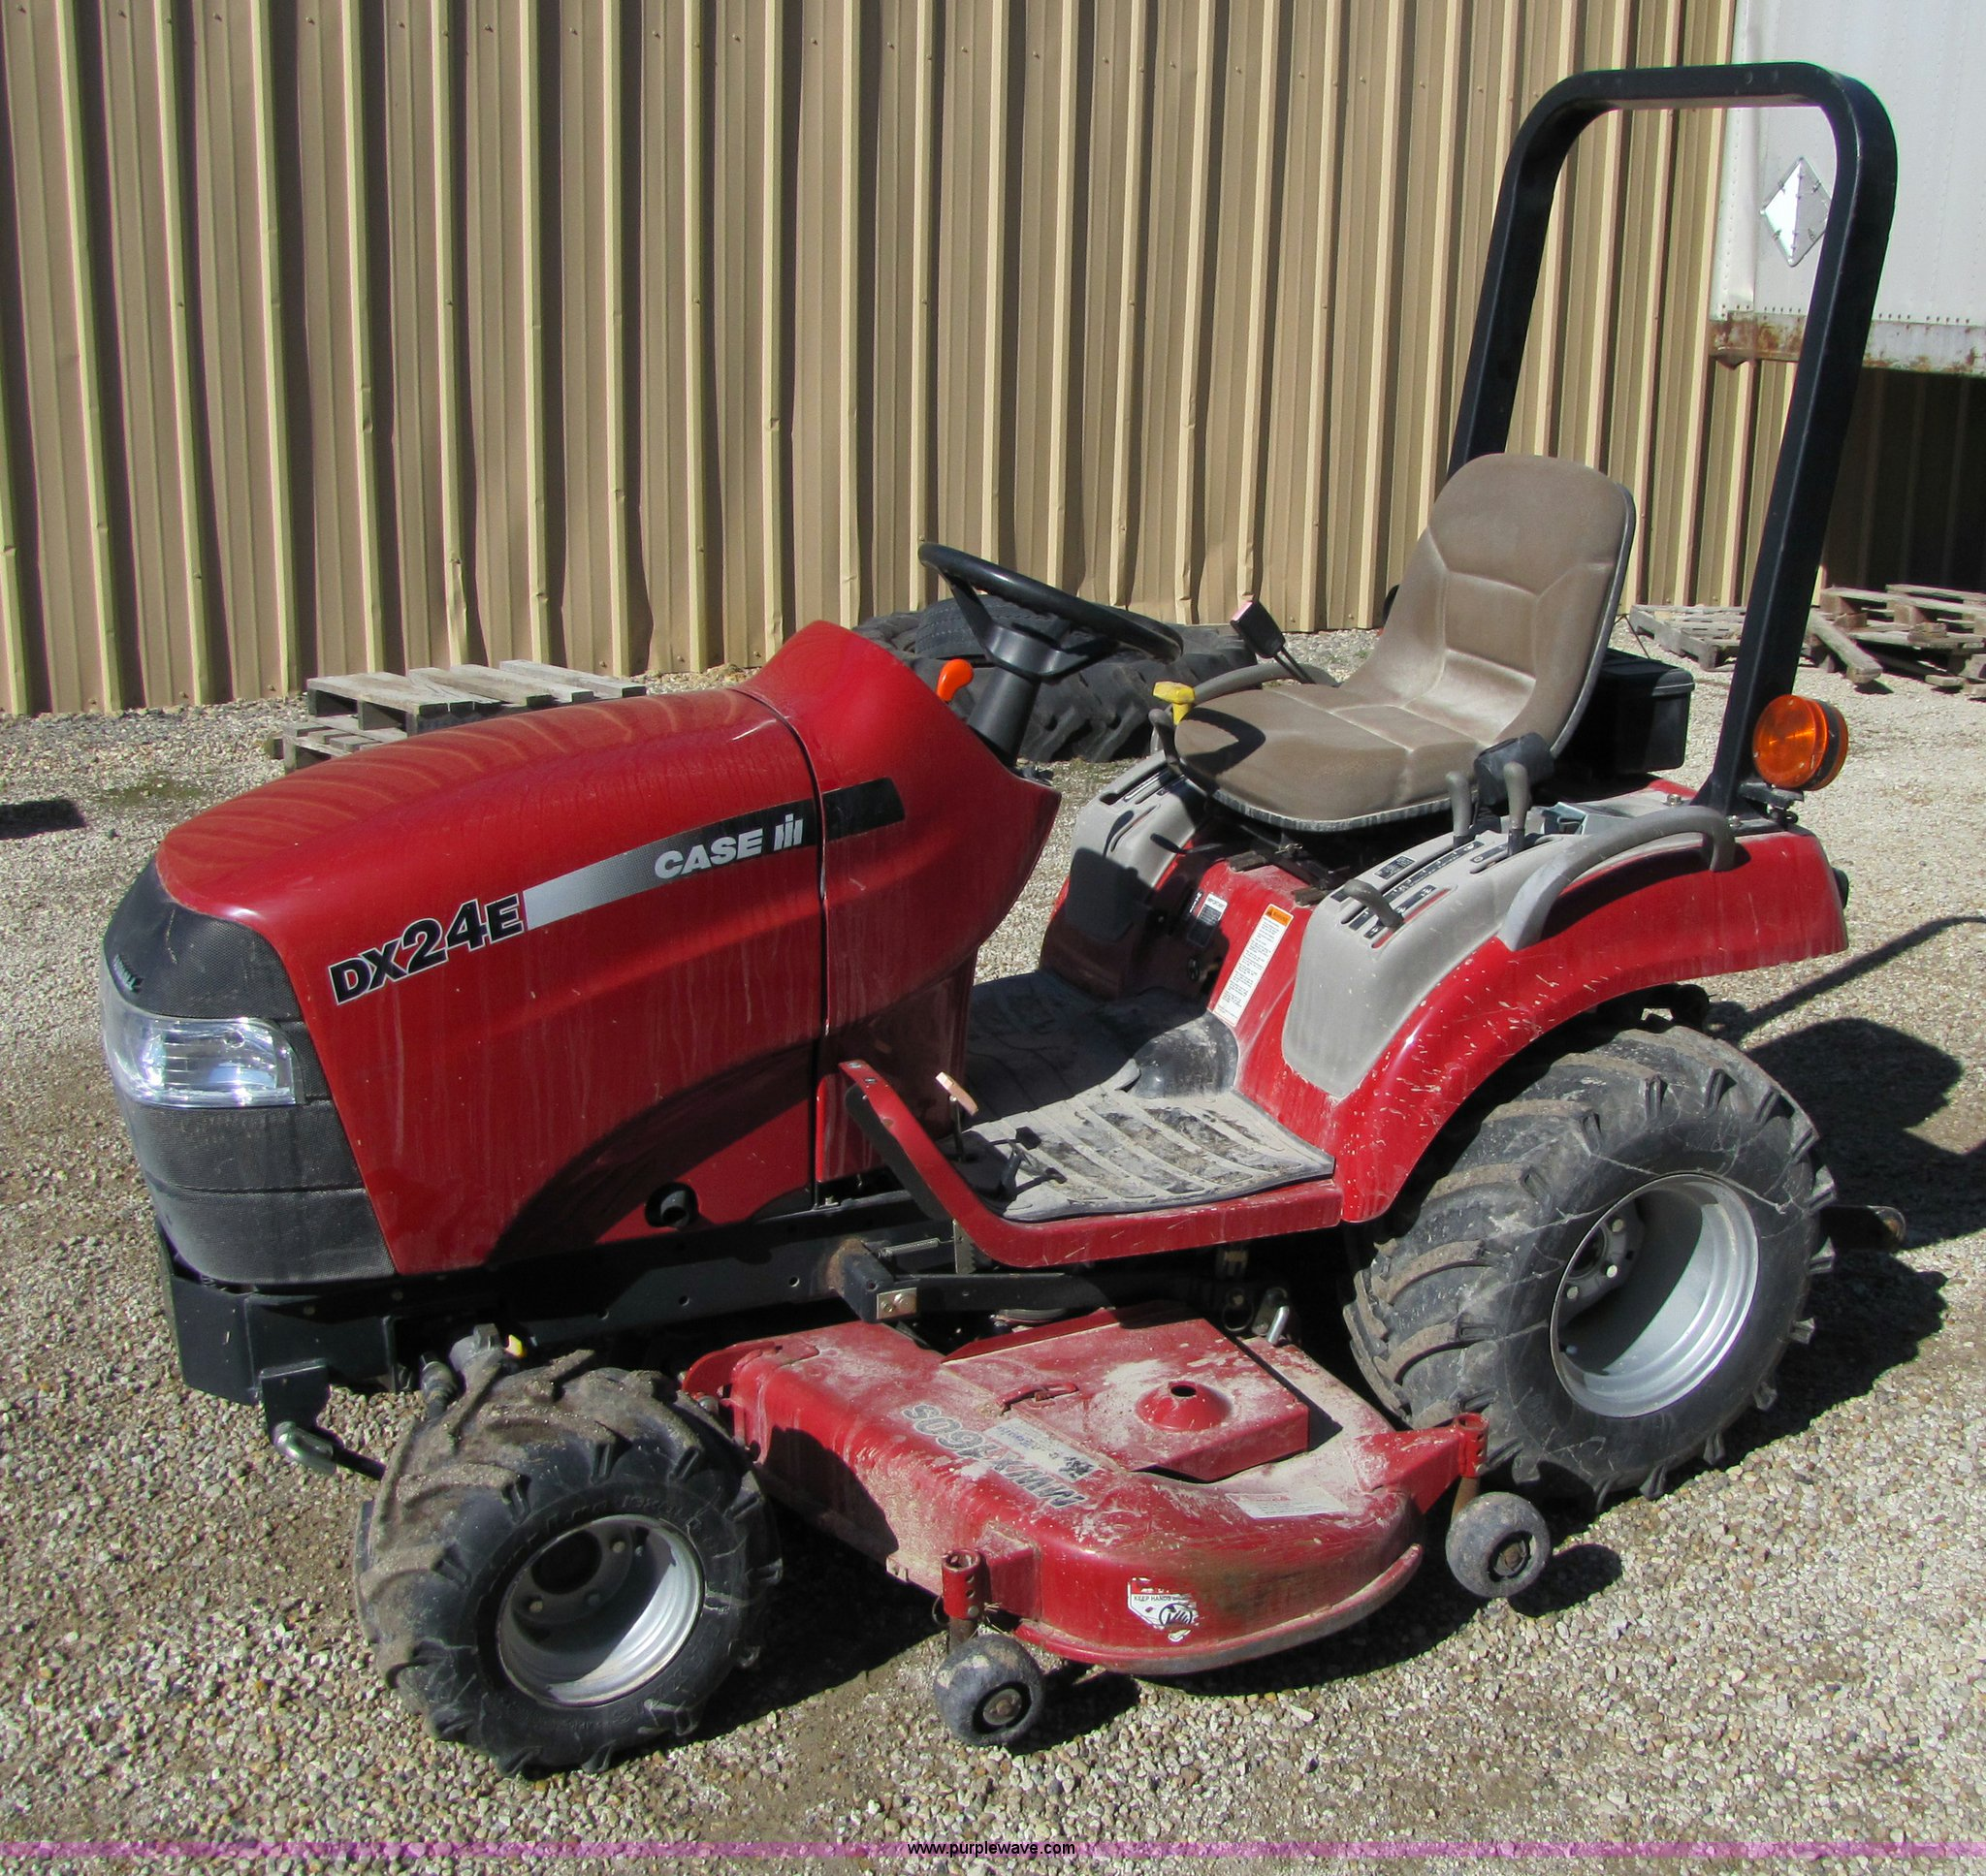 Case ih lawn garden tractors fasci garden for Lawn and garden implements